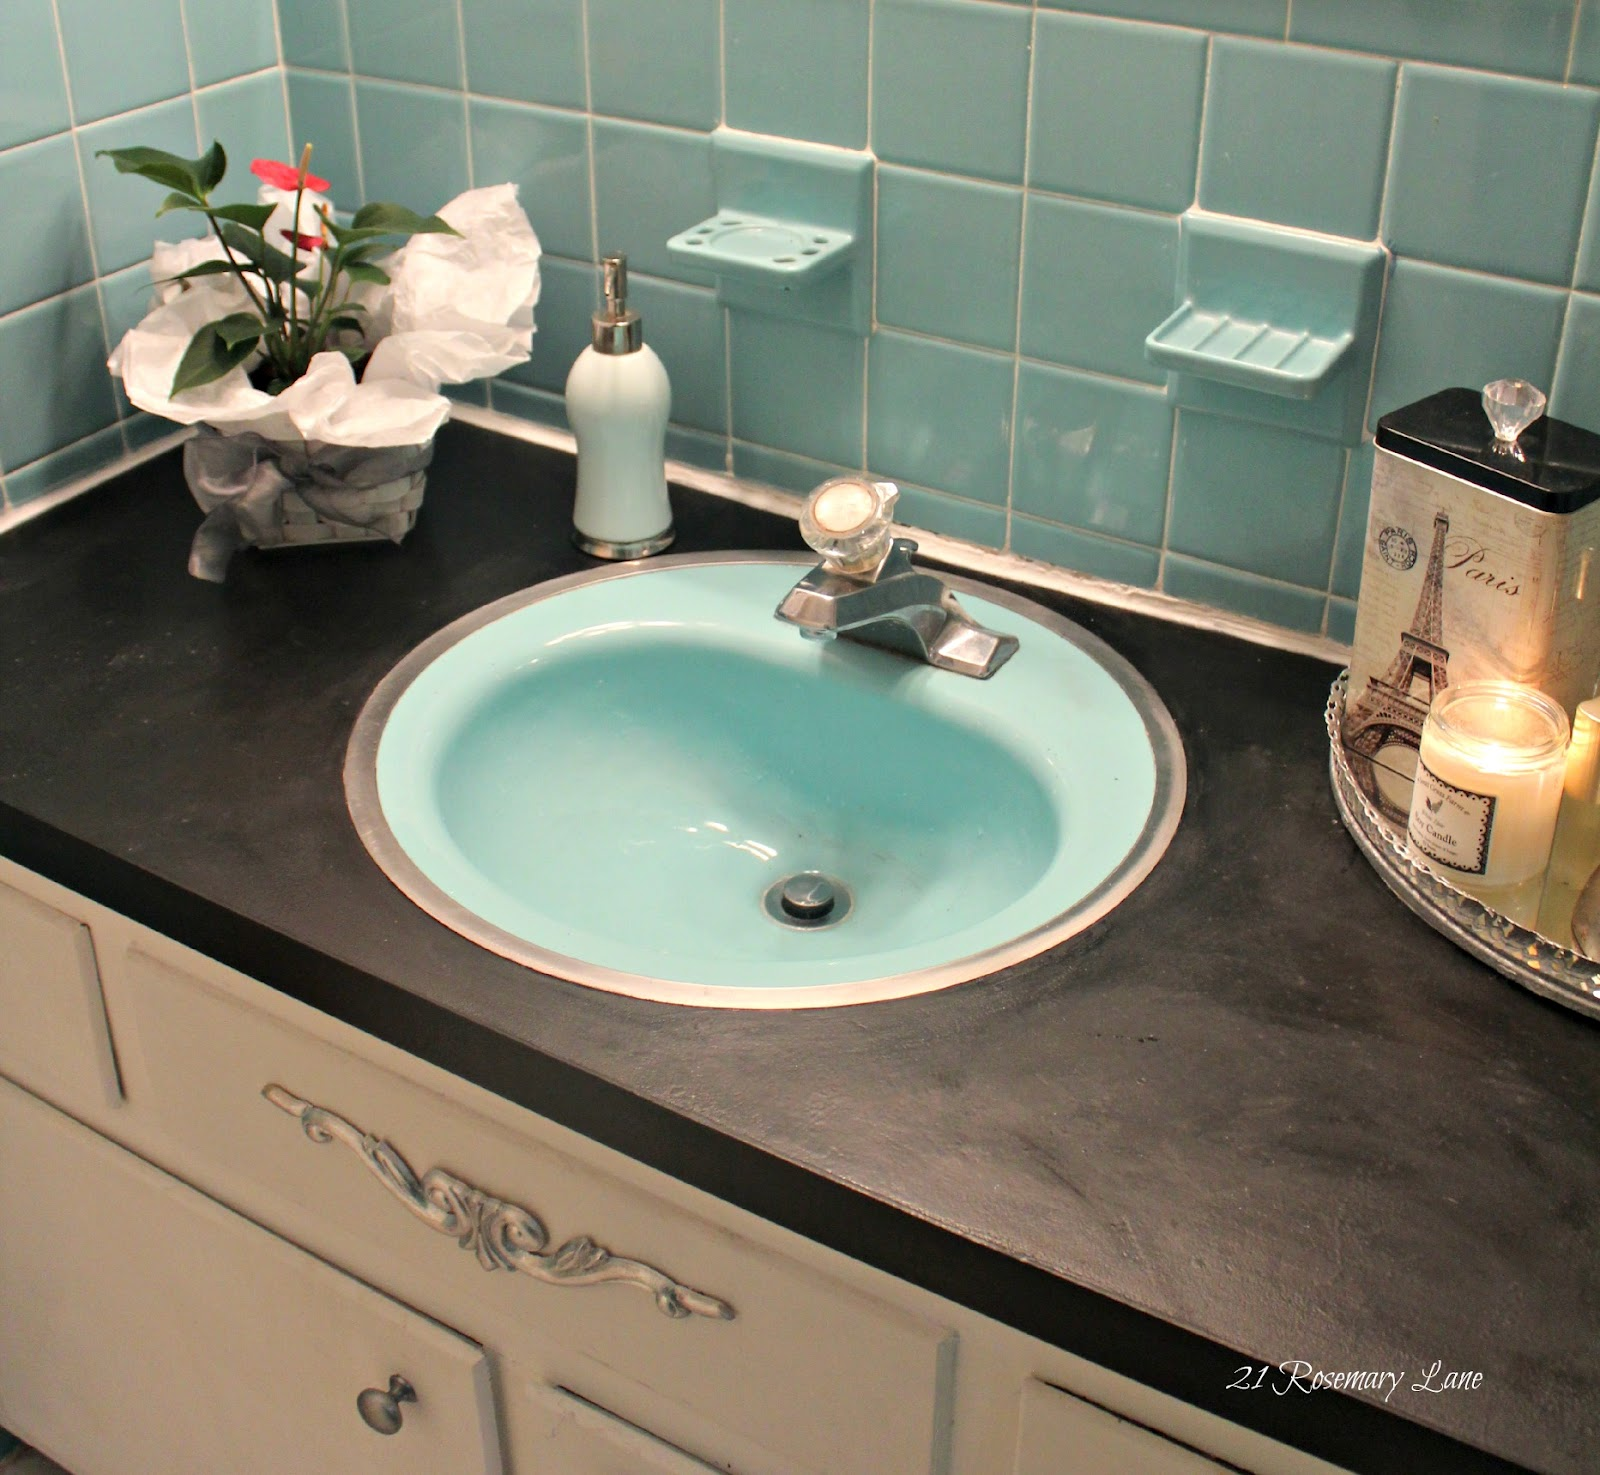 How To Paint A Bathroom: 21 Rosemary Lane: Painted Bathroom Counter Top